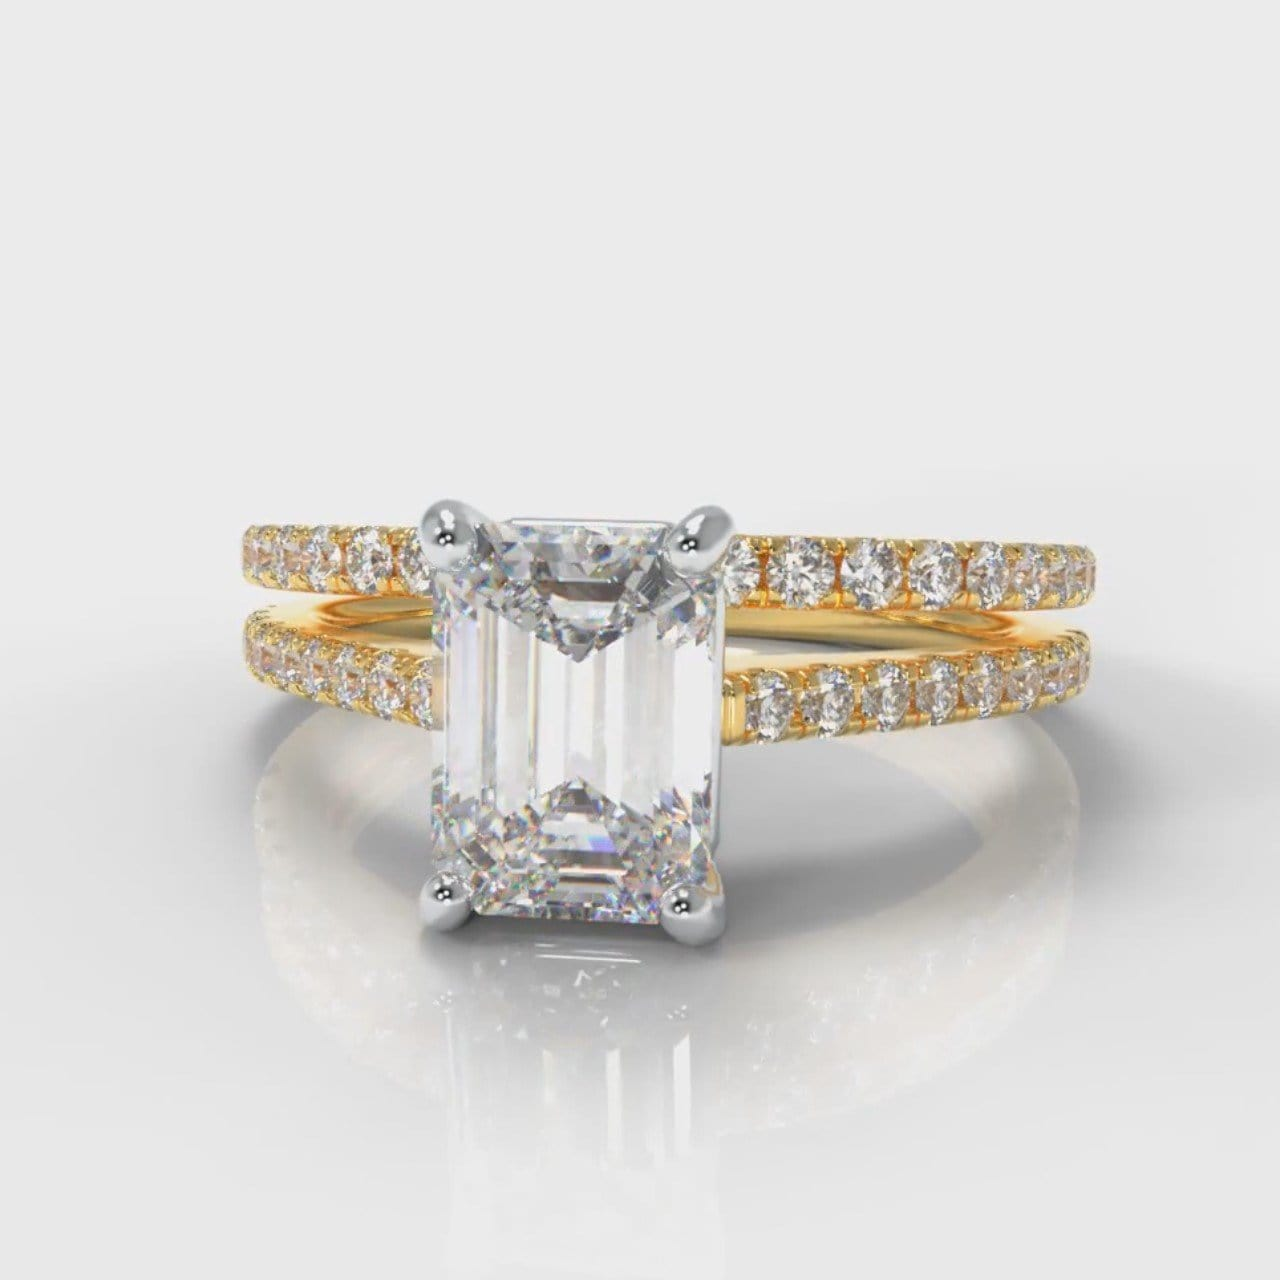 Petite Micropavé Emerald Cut Diamond Bridal Set - Yellow Gold